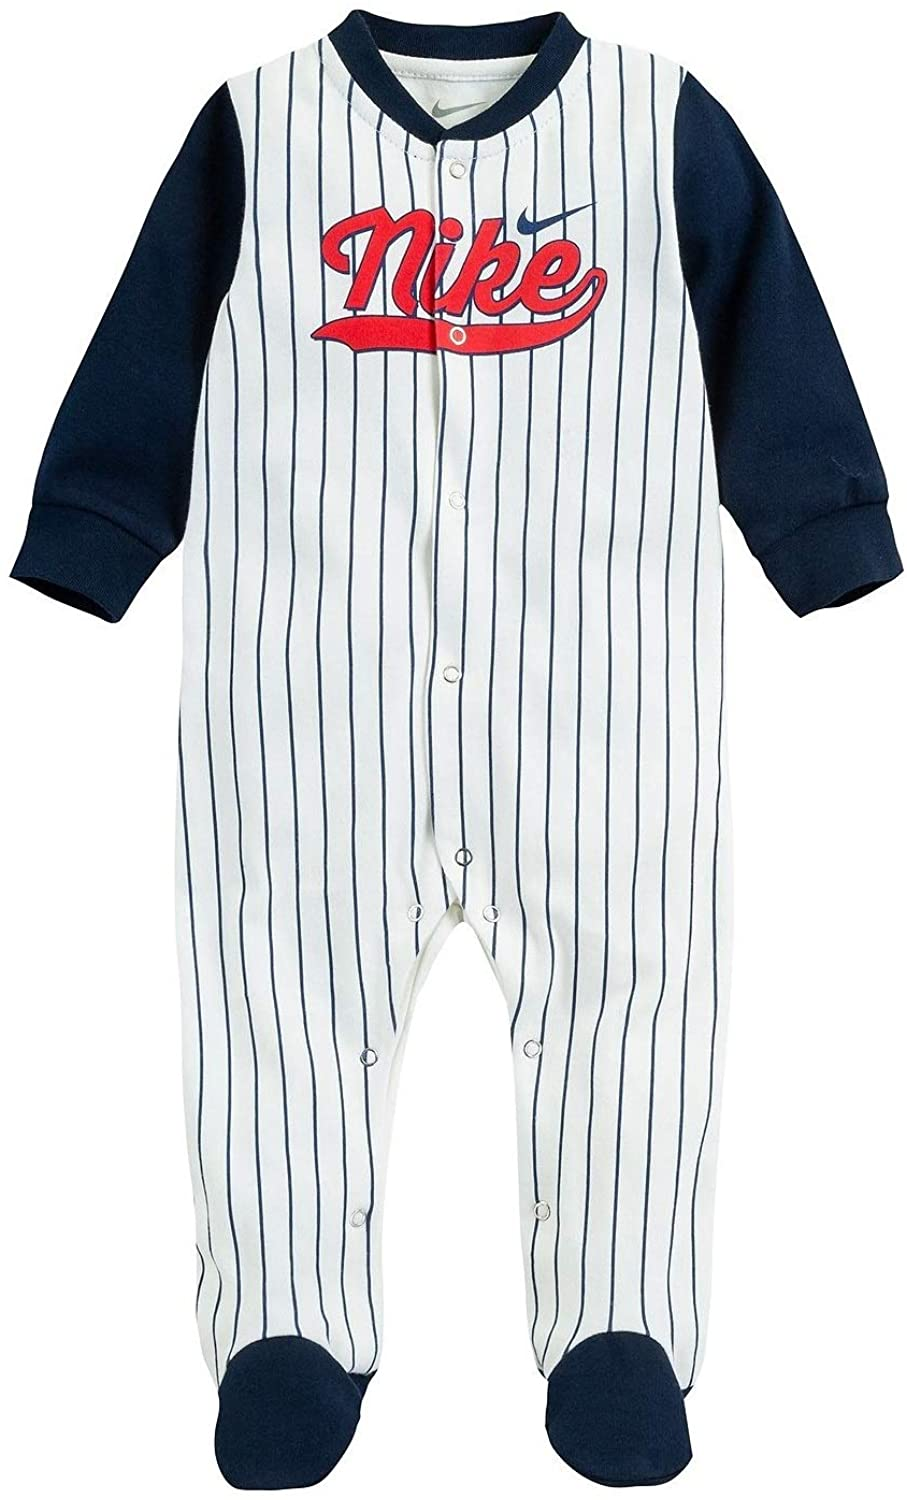 Nike Infant Baseball Uniform Footed Coverall (Size 3 Months) White/Navy